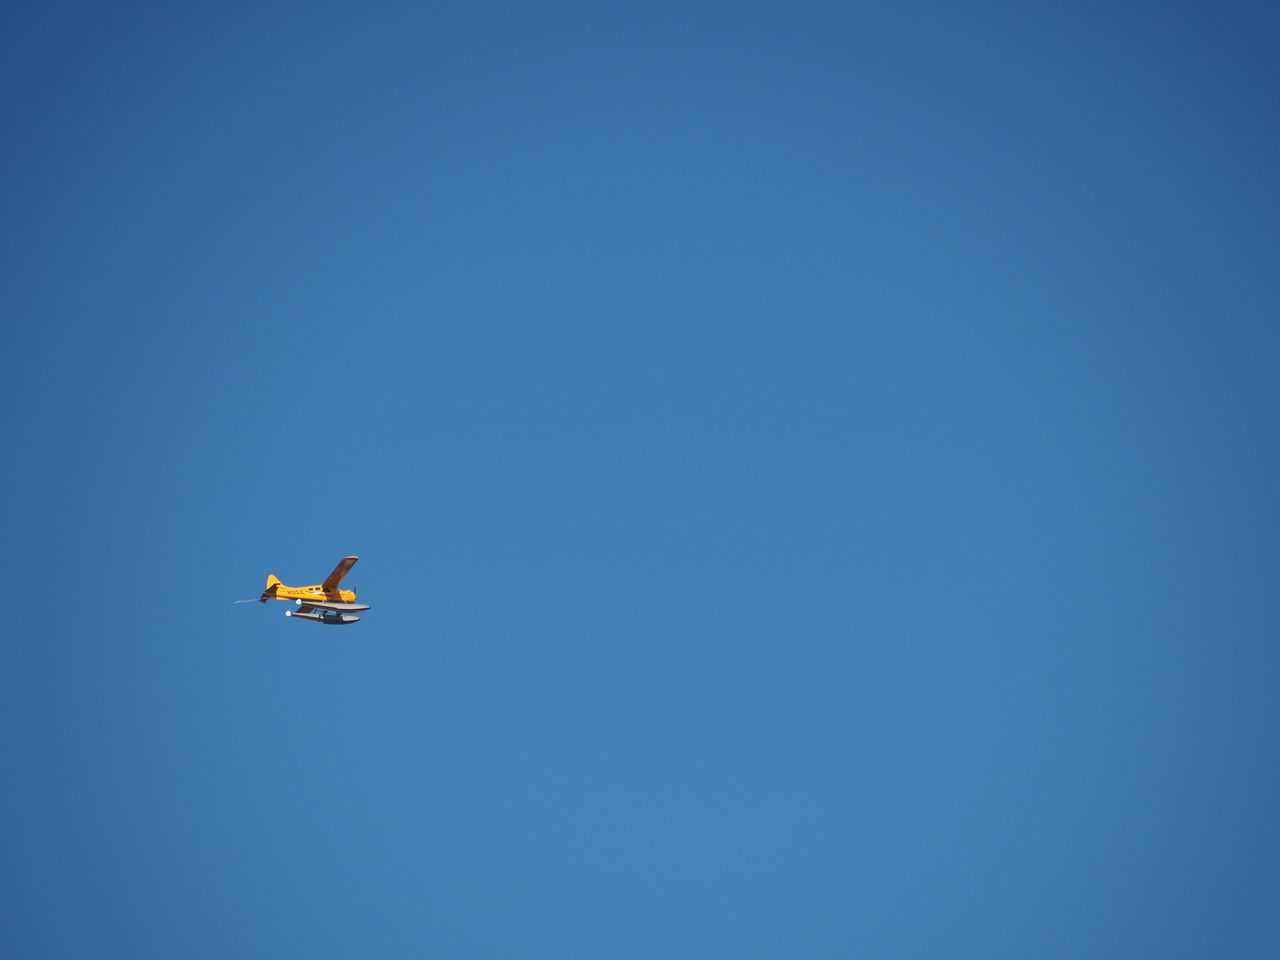 A yellow hydroplane in the air Air Air Vehicle Aircraft Aircraft In The Sky Airplane Blue Blue Sky Clear Sky Fly Flying Flying High Hydroplane In The Air Low Angle View Mid-air Minimal Minimalism Negative Space Noedit On The Move Plane Sky Transportation Yellow Yellow Plane